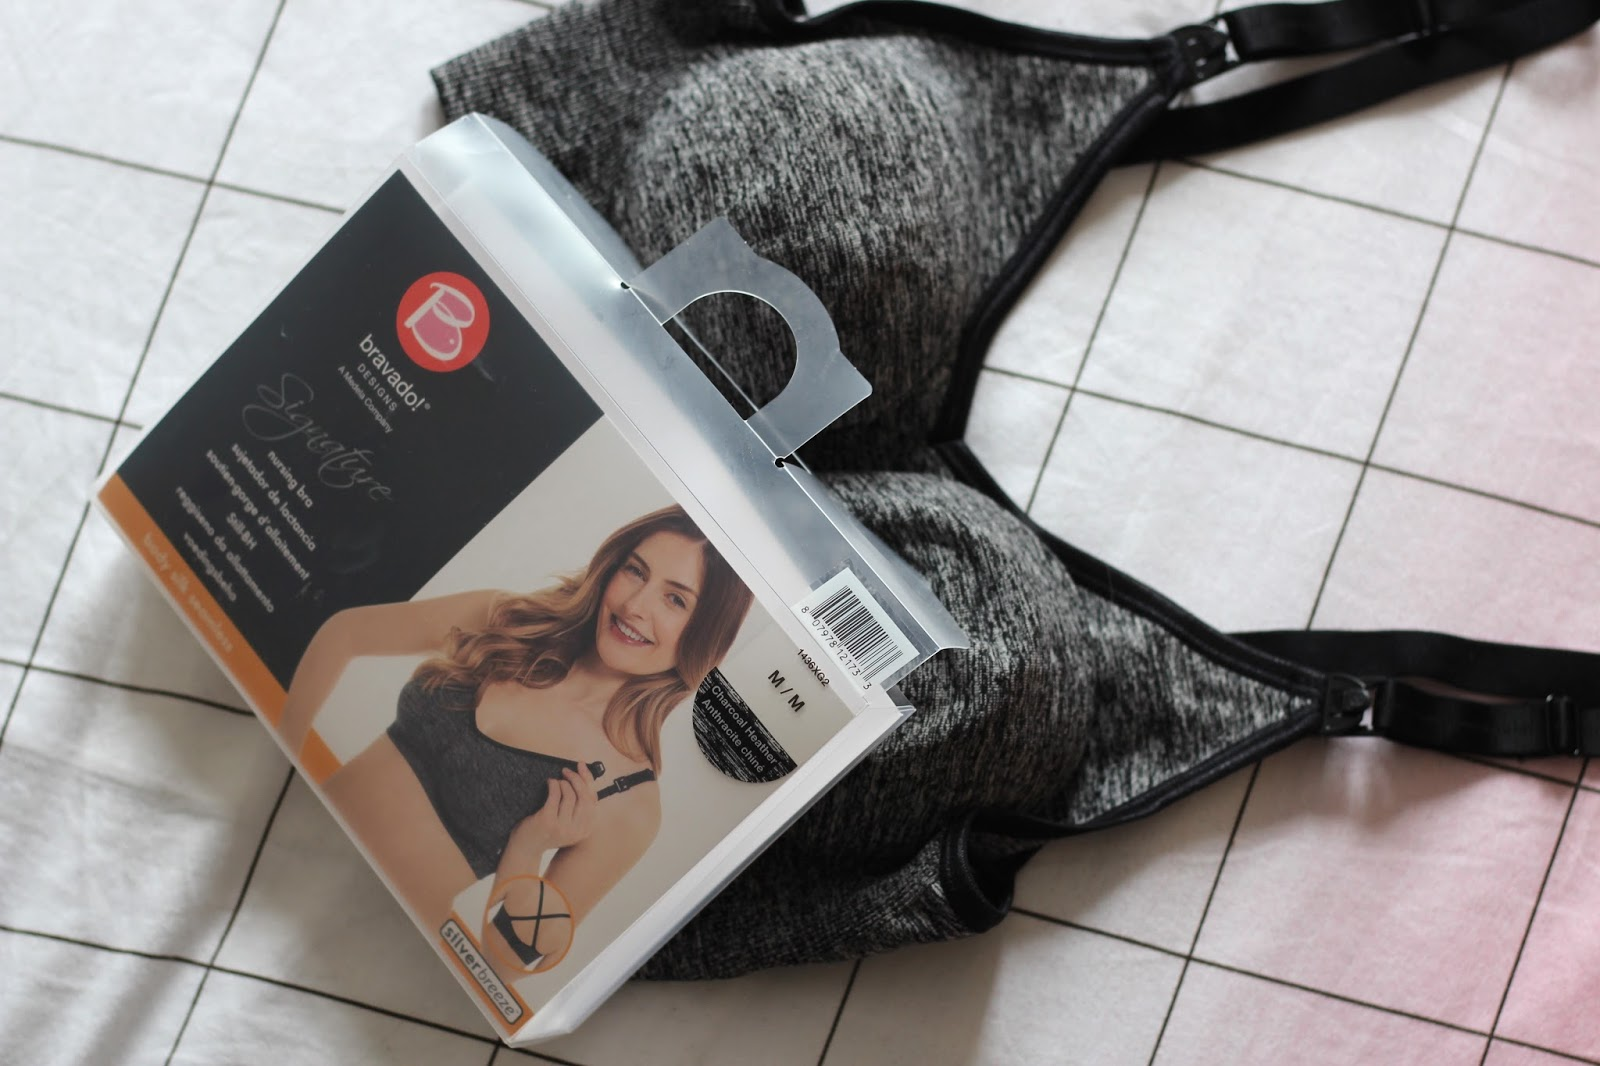 a0525a209e3a7 So when Bravado Designs contacted me asking if I'd like to try out their Body  Silk Seamless Yoga Nursing Bra of course I wasn't going to say no!